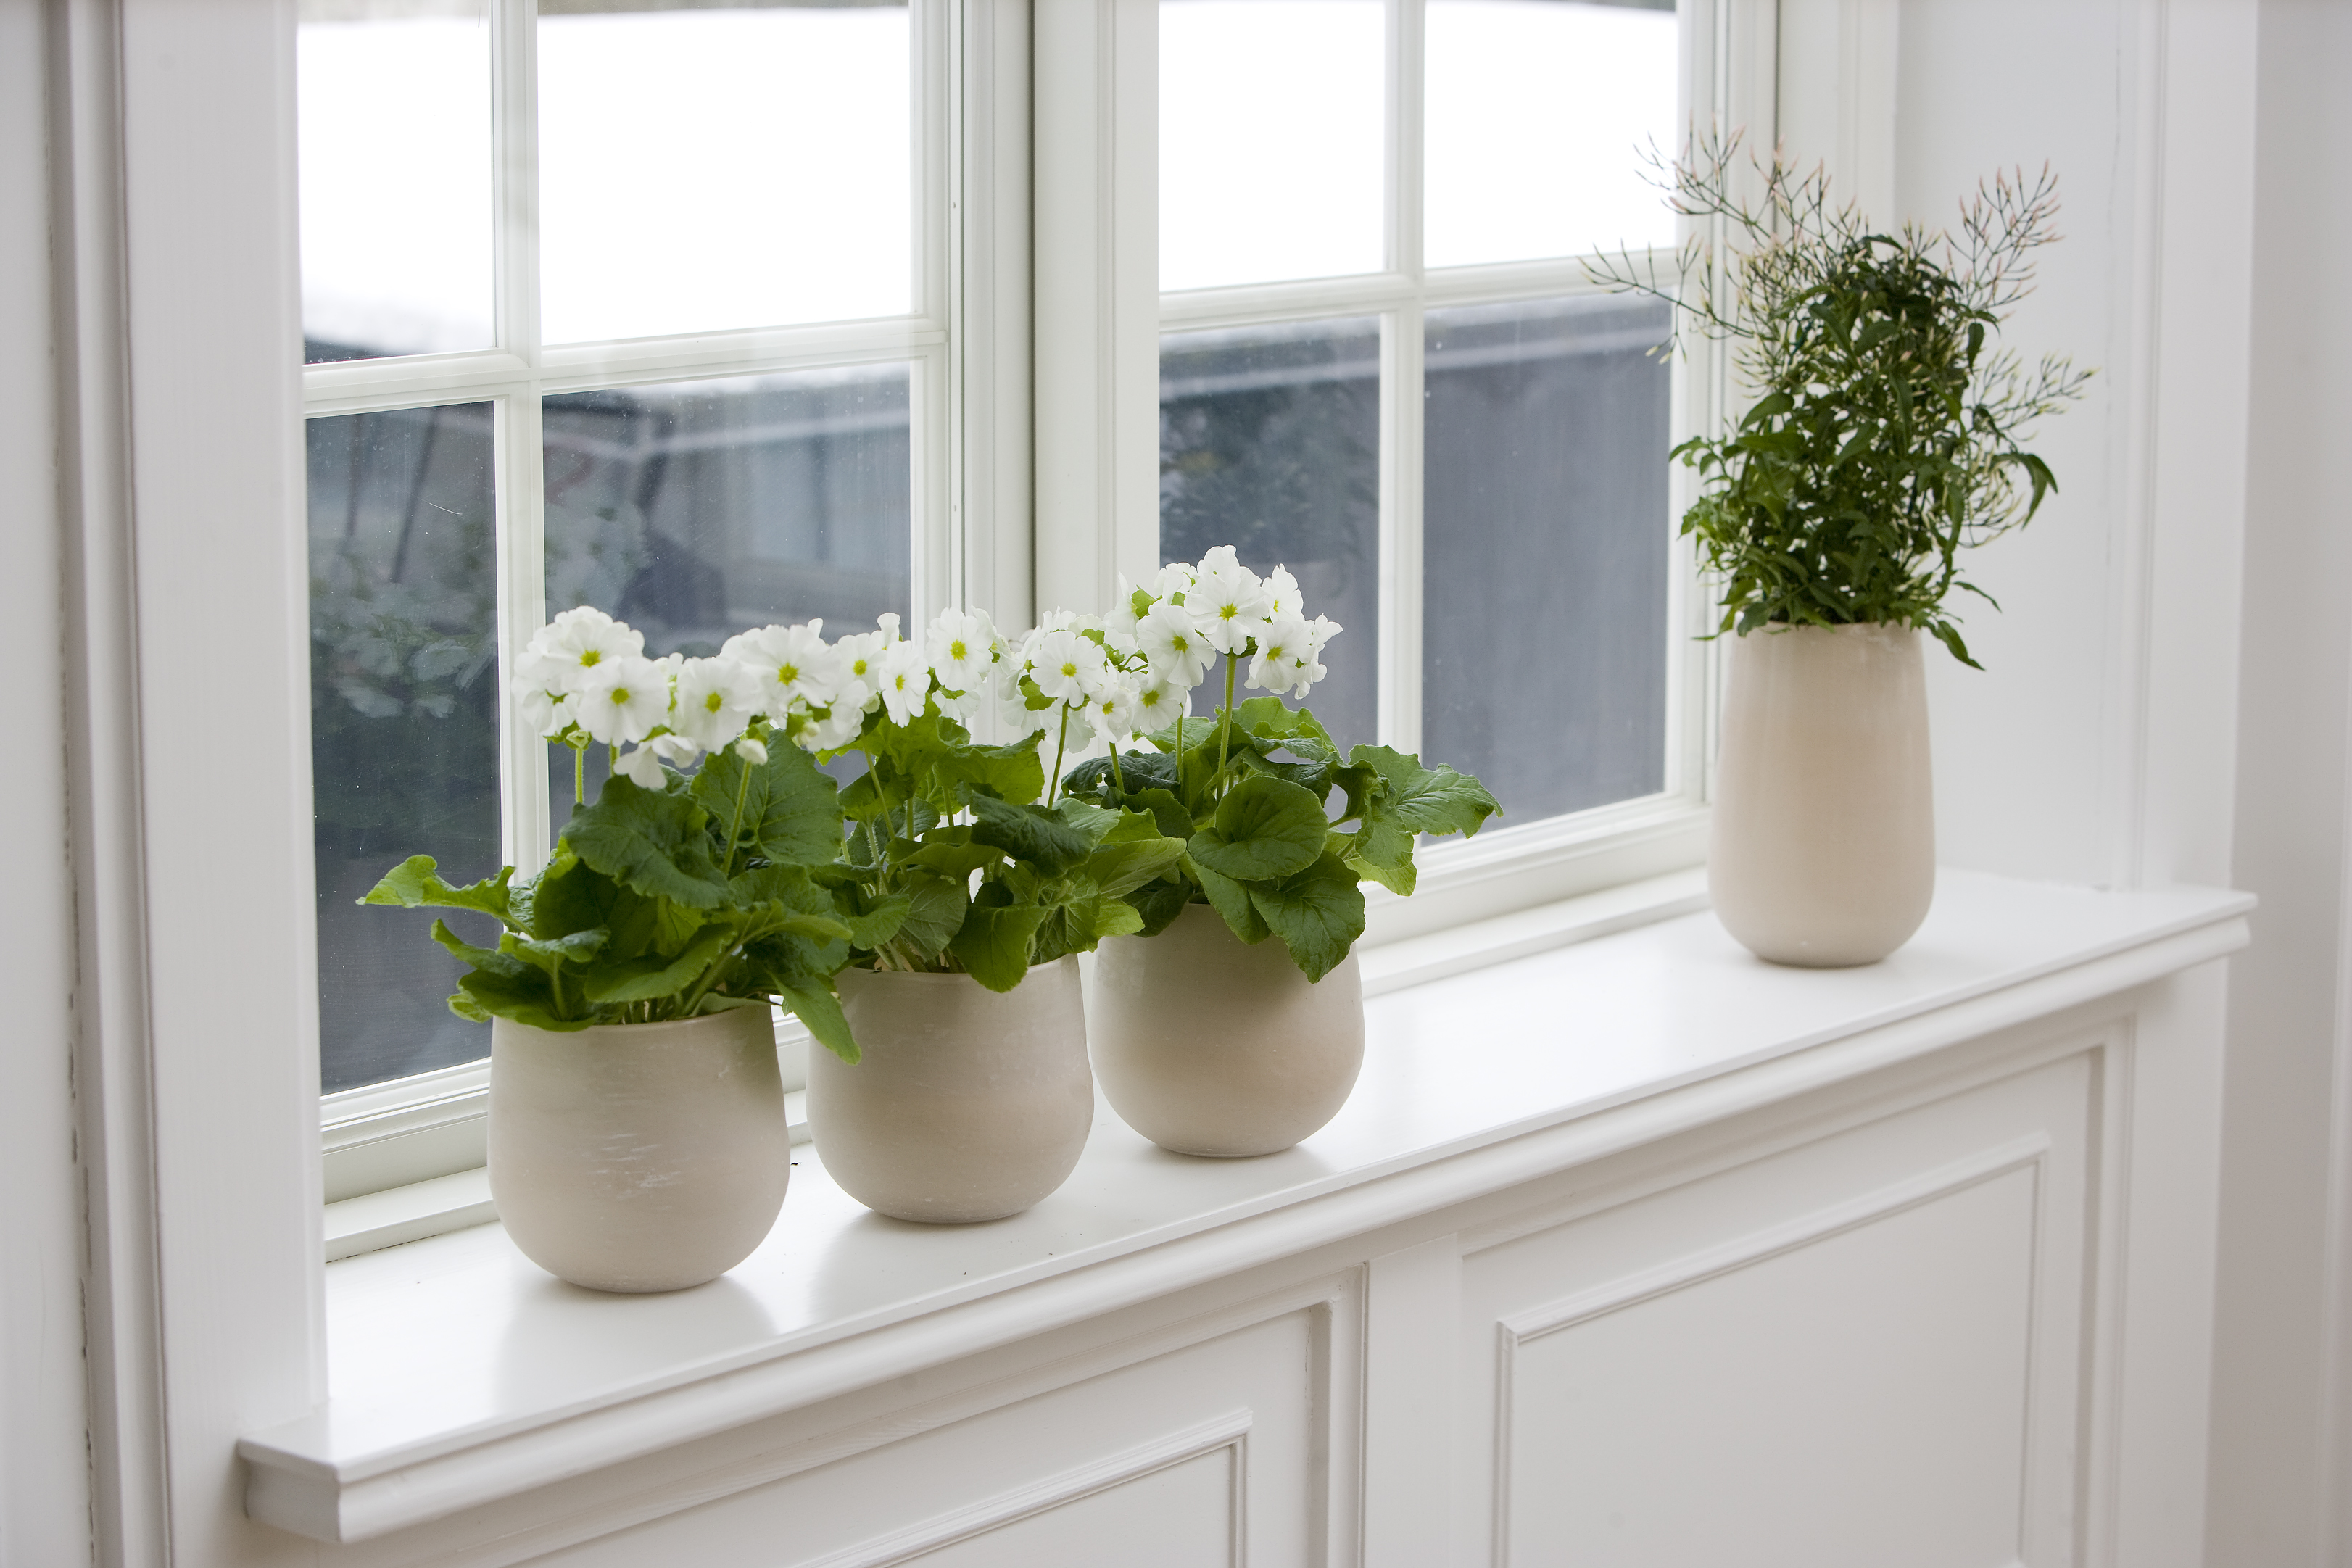 Floradania marketing what does your window sill signal - Houseplants thrive low light youre window sill ...